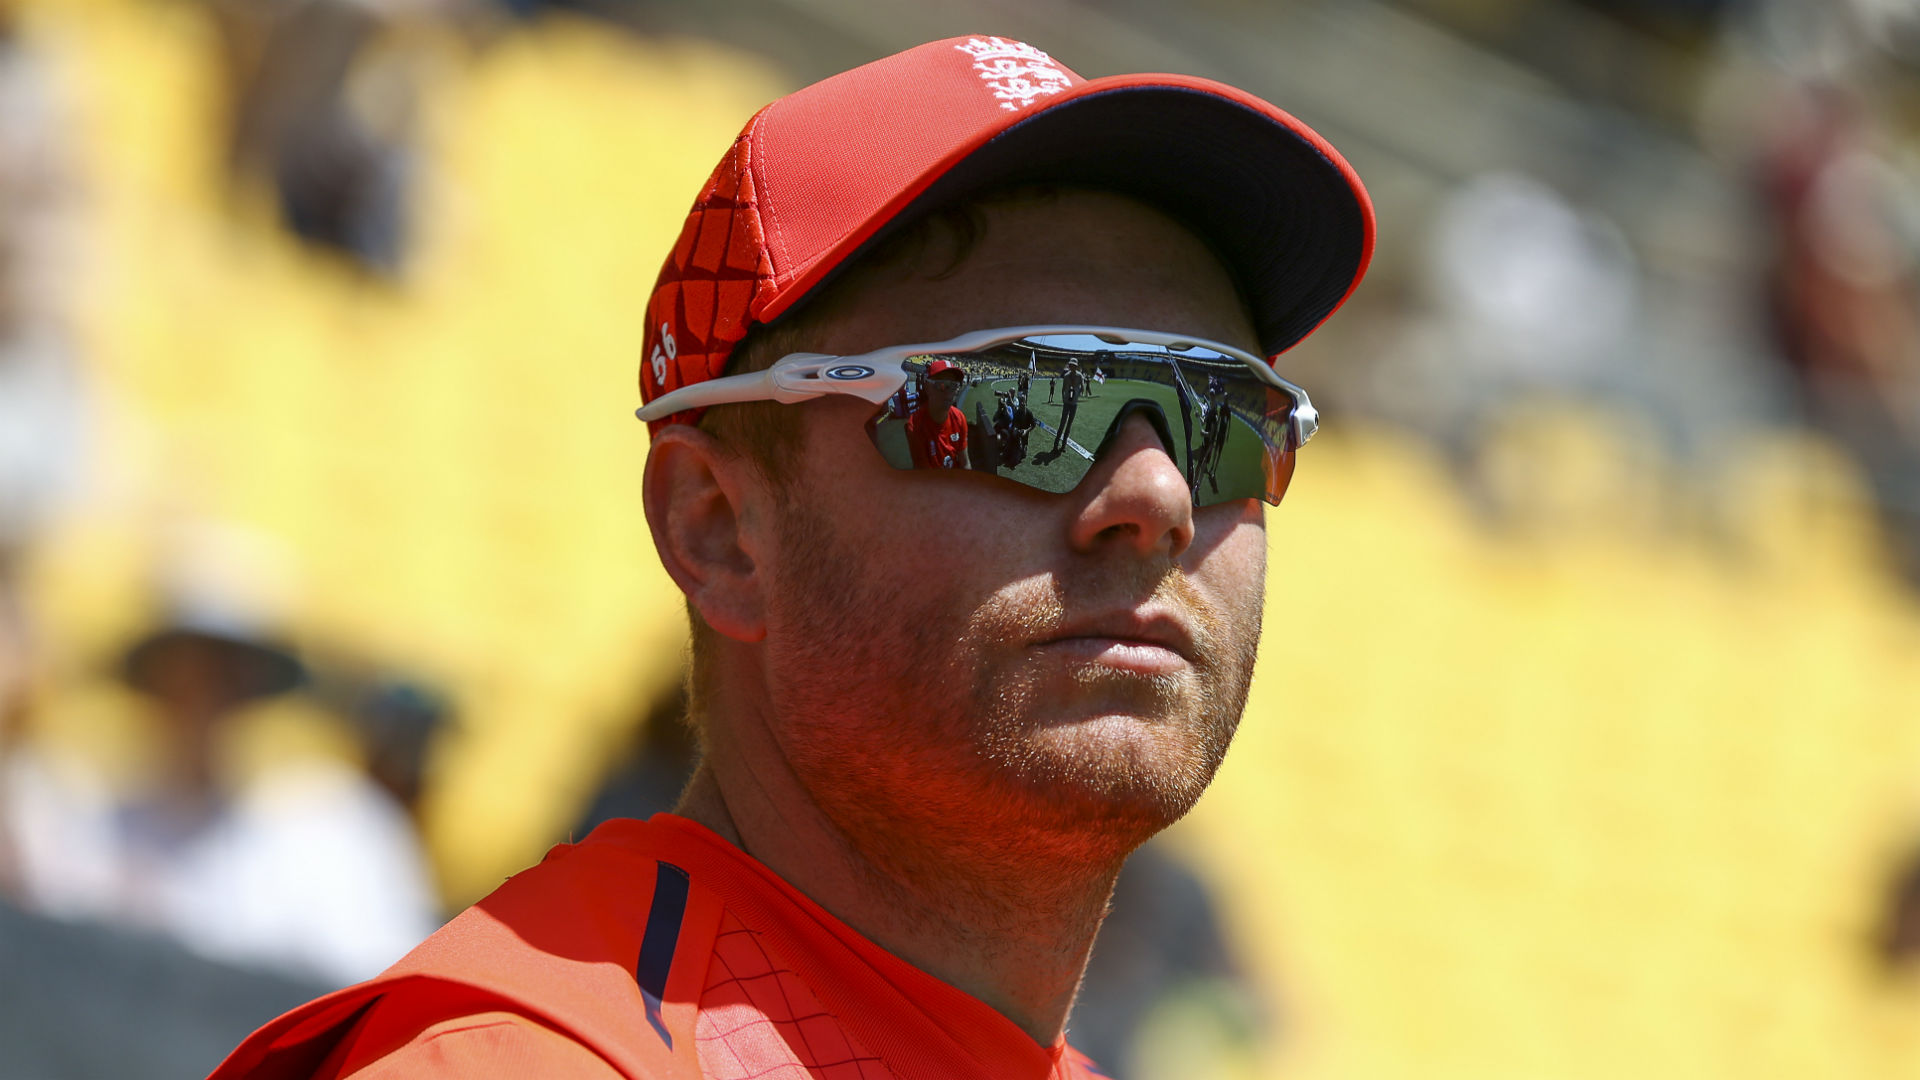 Bairstow leads Sunrisers to first IPL victory of 2021